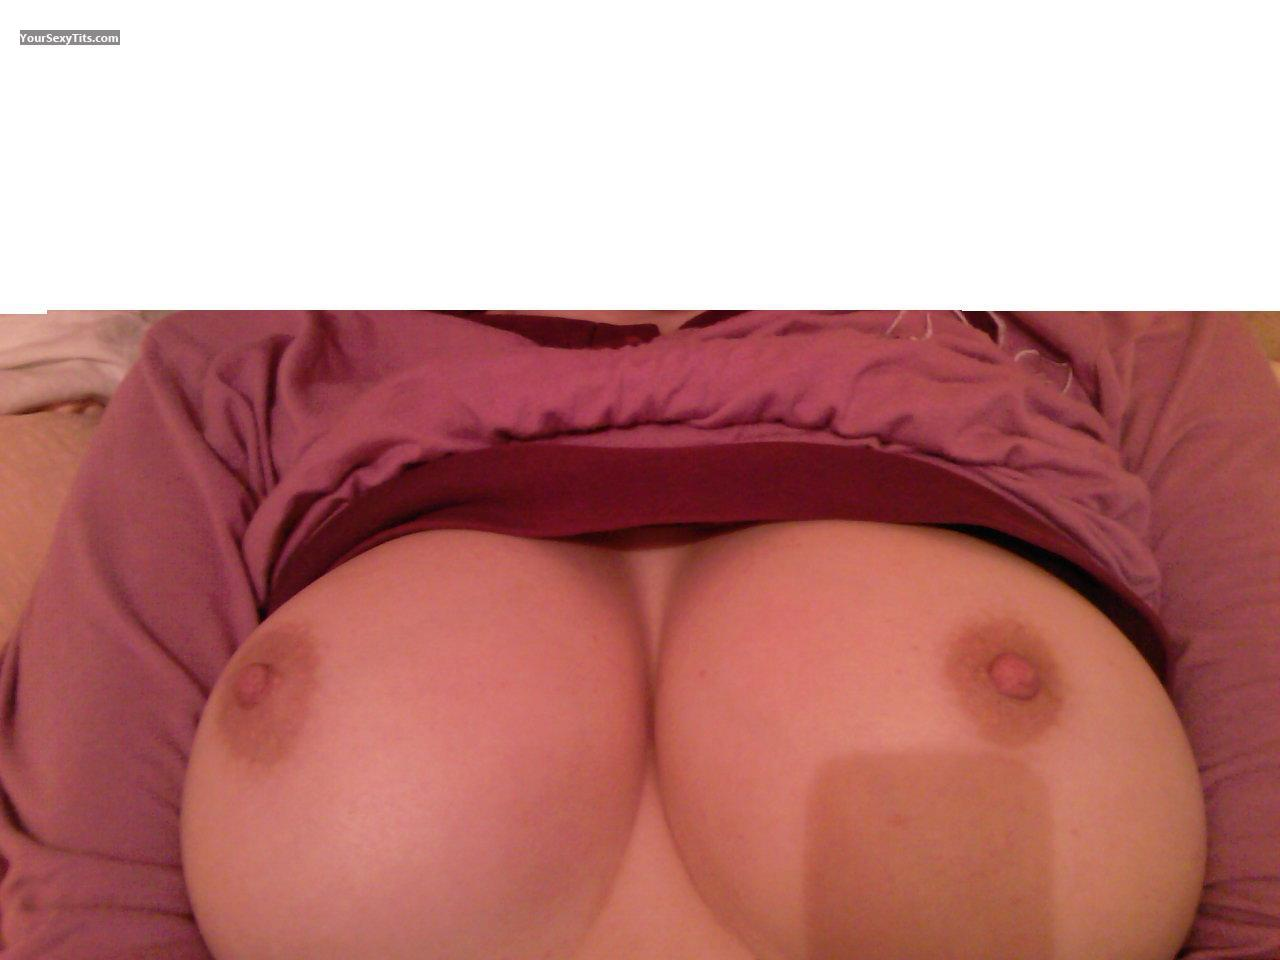 My Big Tits Selfie by Irma